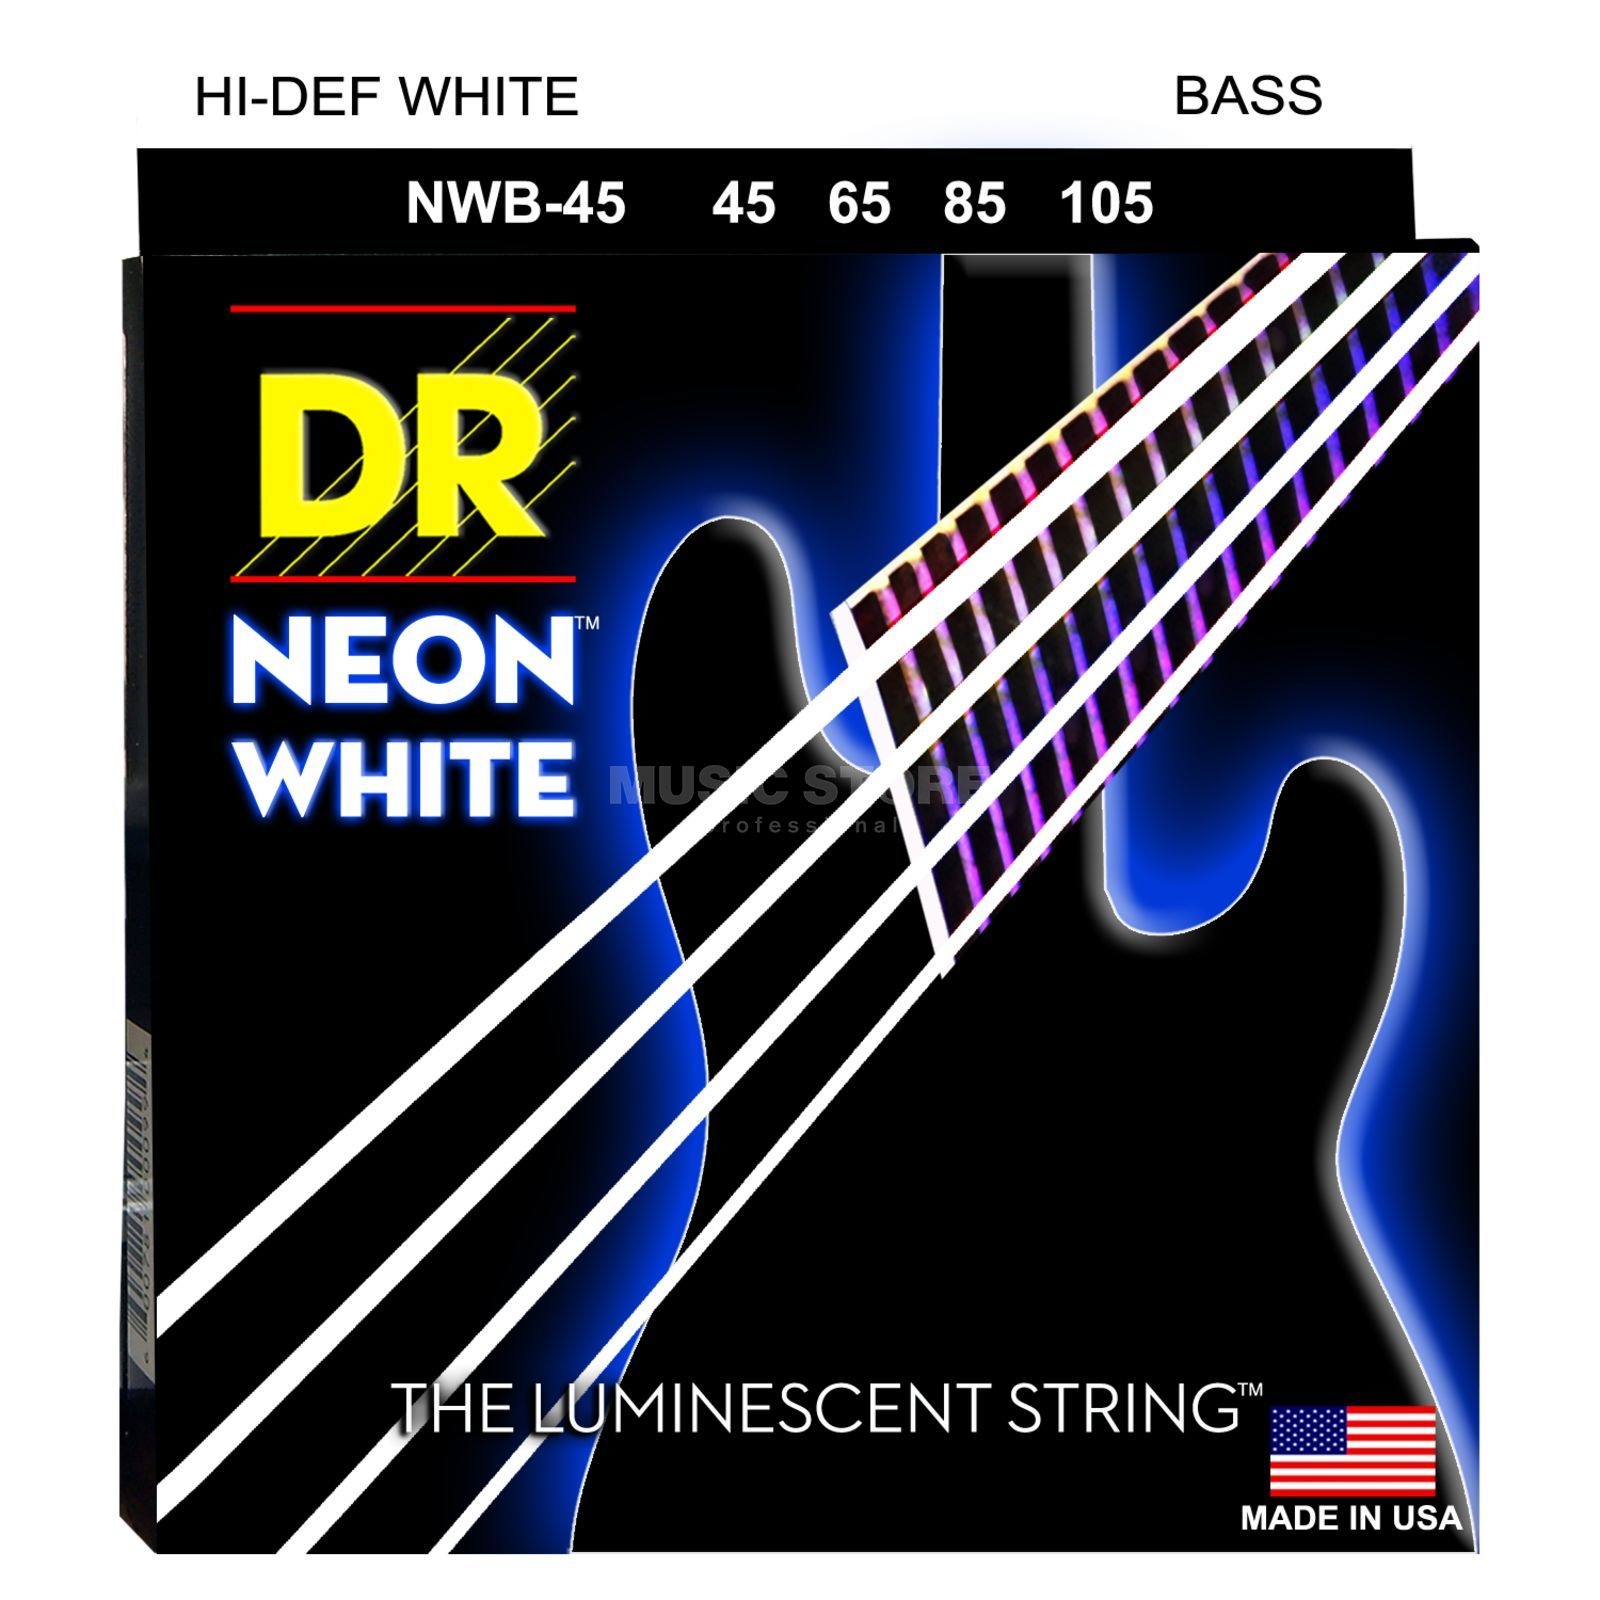 DR 4er bas 45-105 Hi-Def neon wit neon NWB-45 Productafbeelding